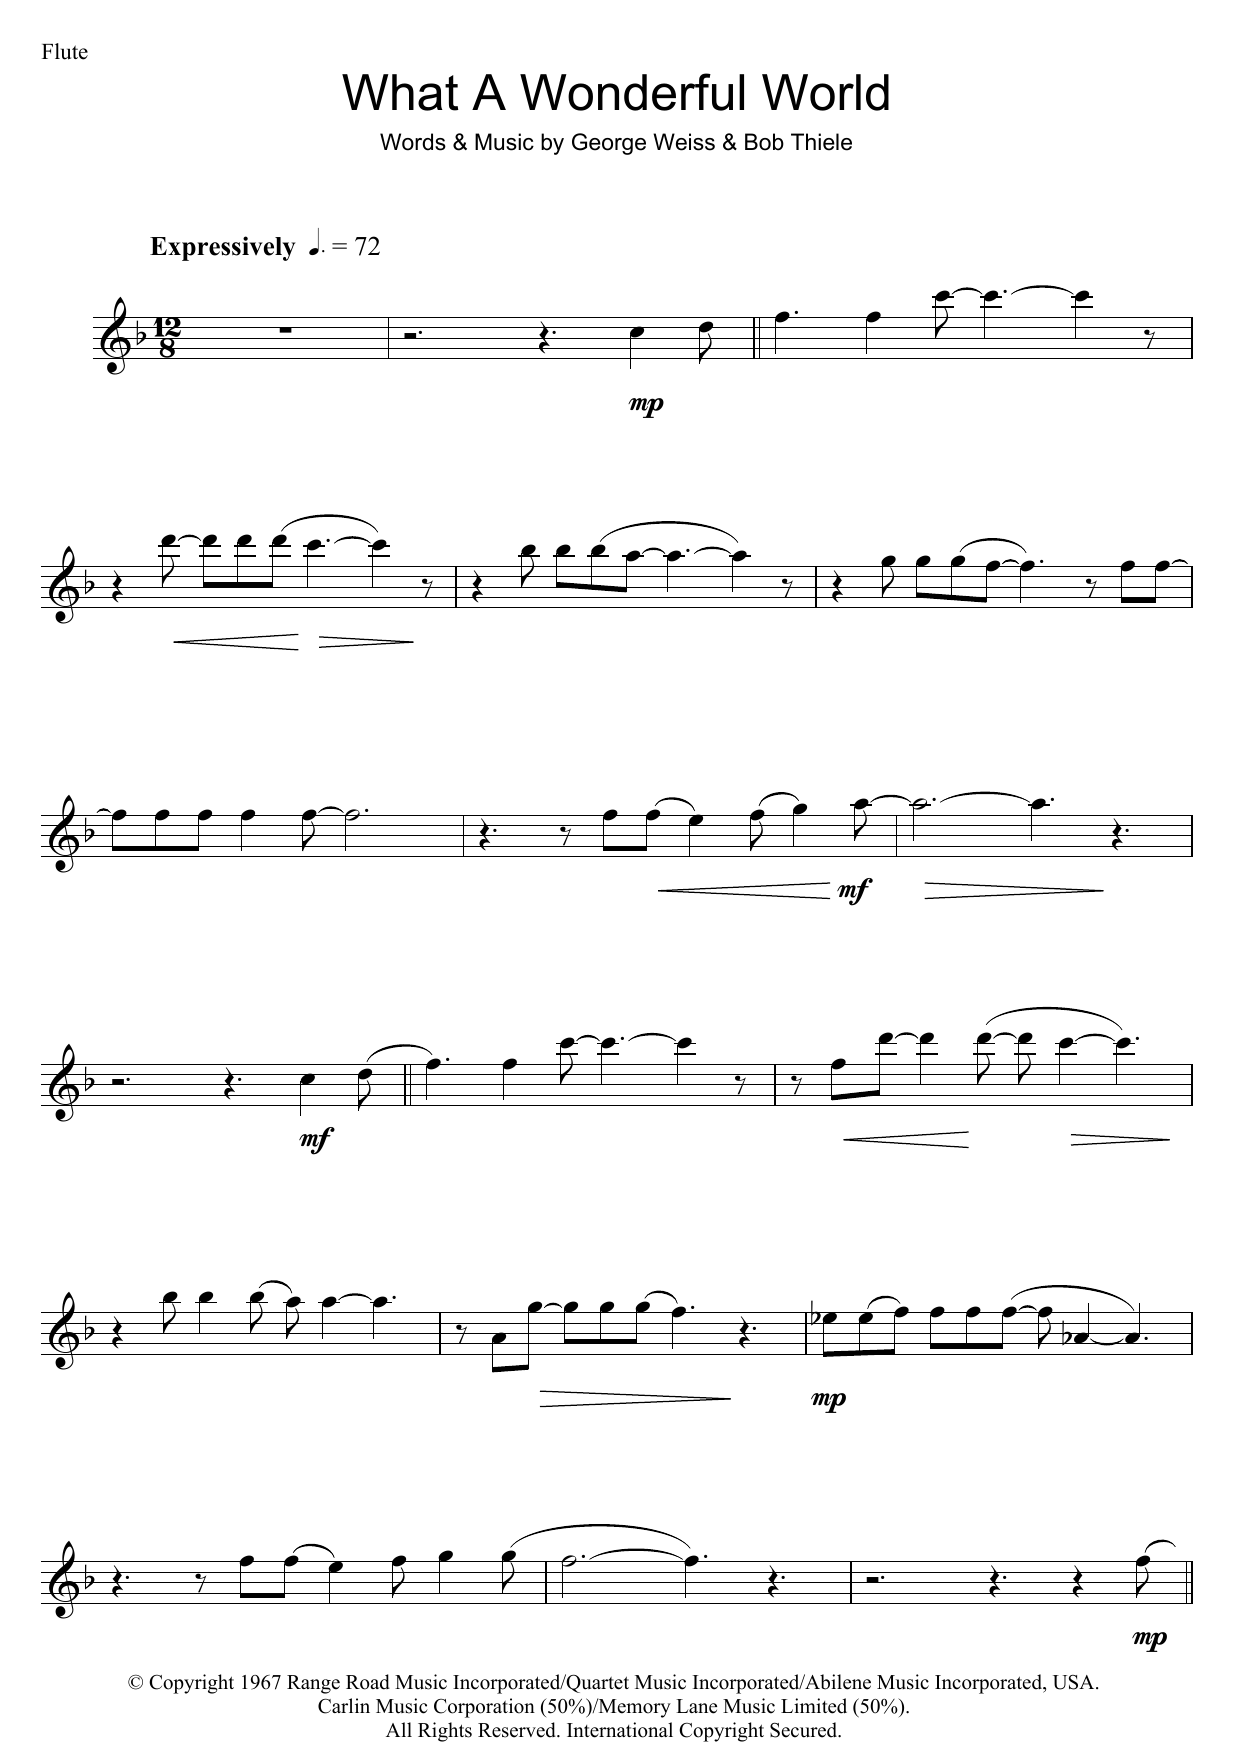 What a wonderful world guitar chords image collections guitar what a wonderful world sheet music by louis armstrong flute 47090 louis armstrong what a wonderful hexwebz Images